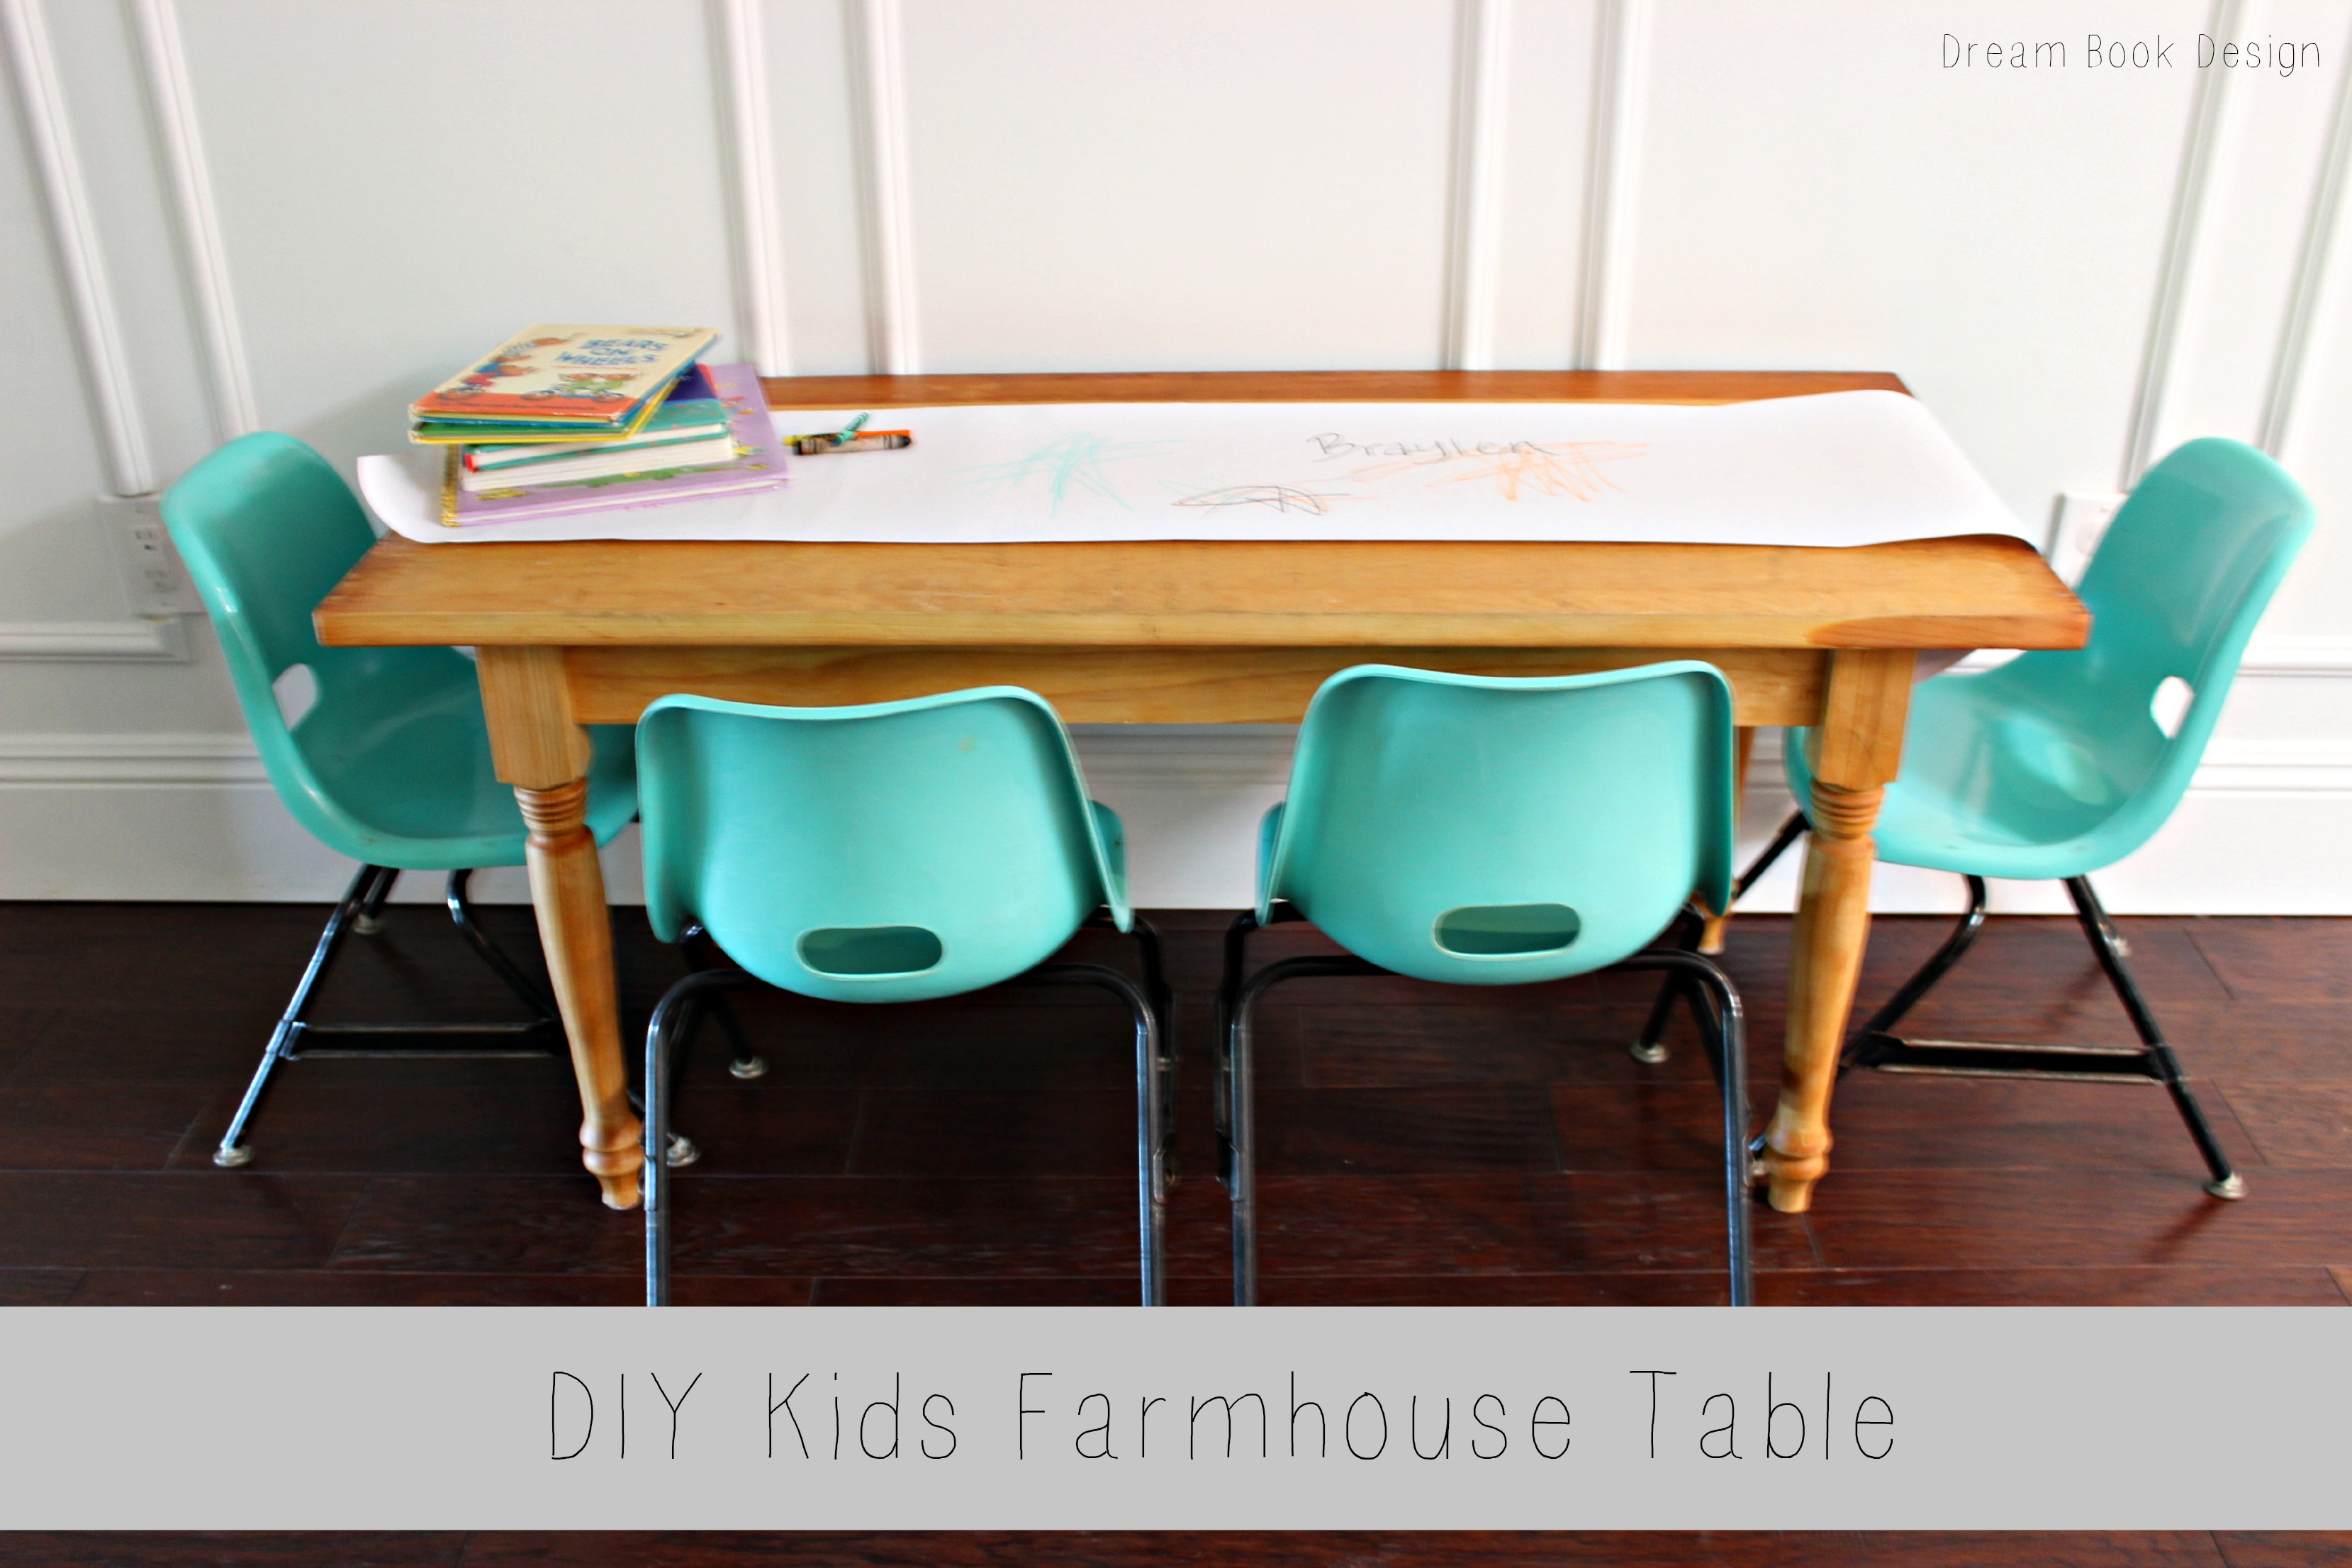 DIY Kids Farmhouse Table - Dream Book Design